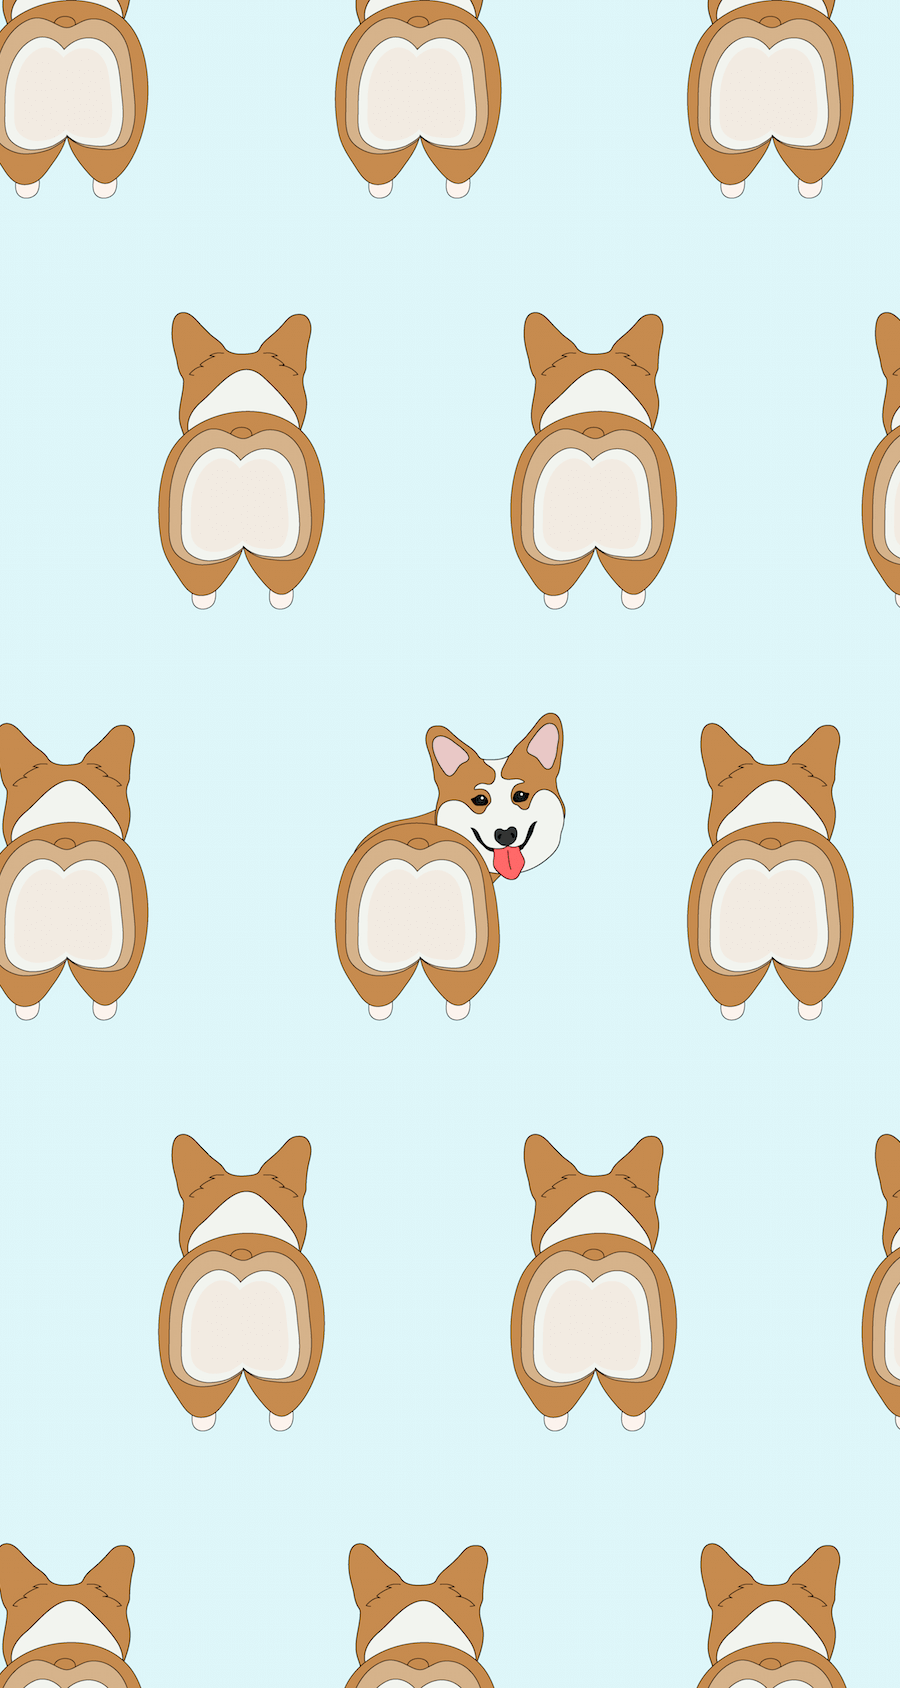 Here are some free wallpapers so you can surround yourself